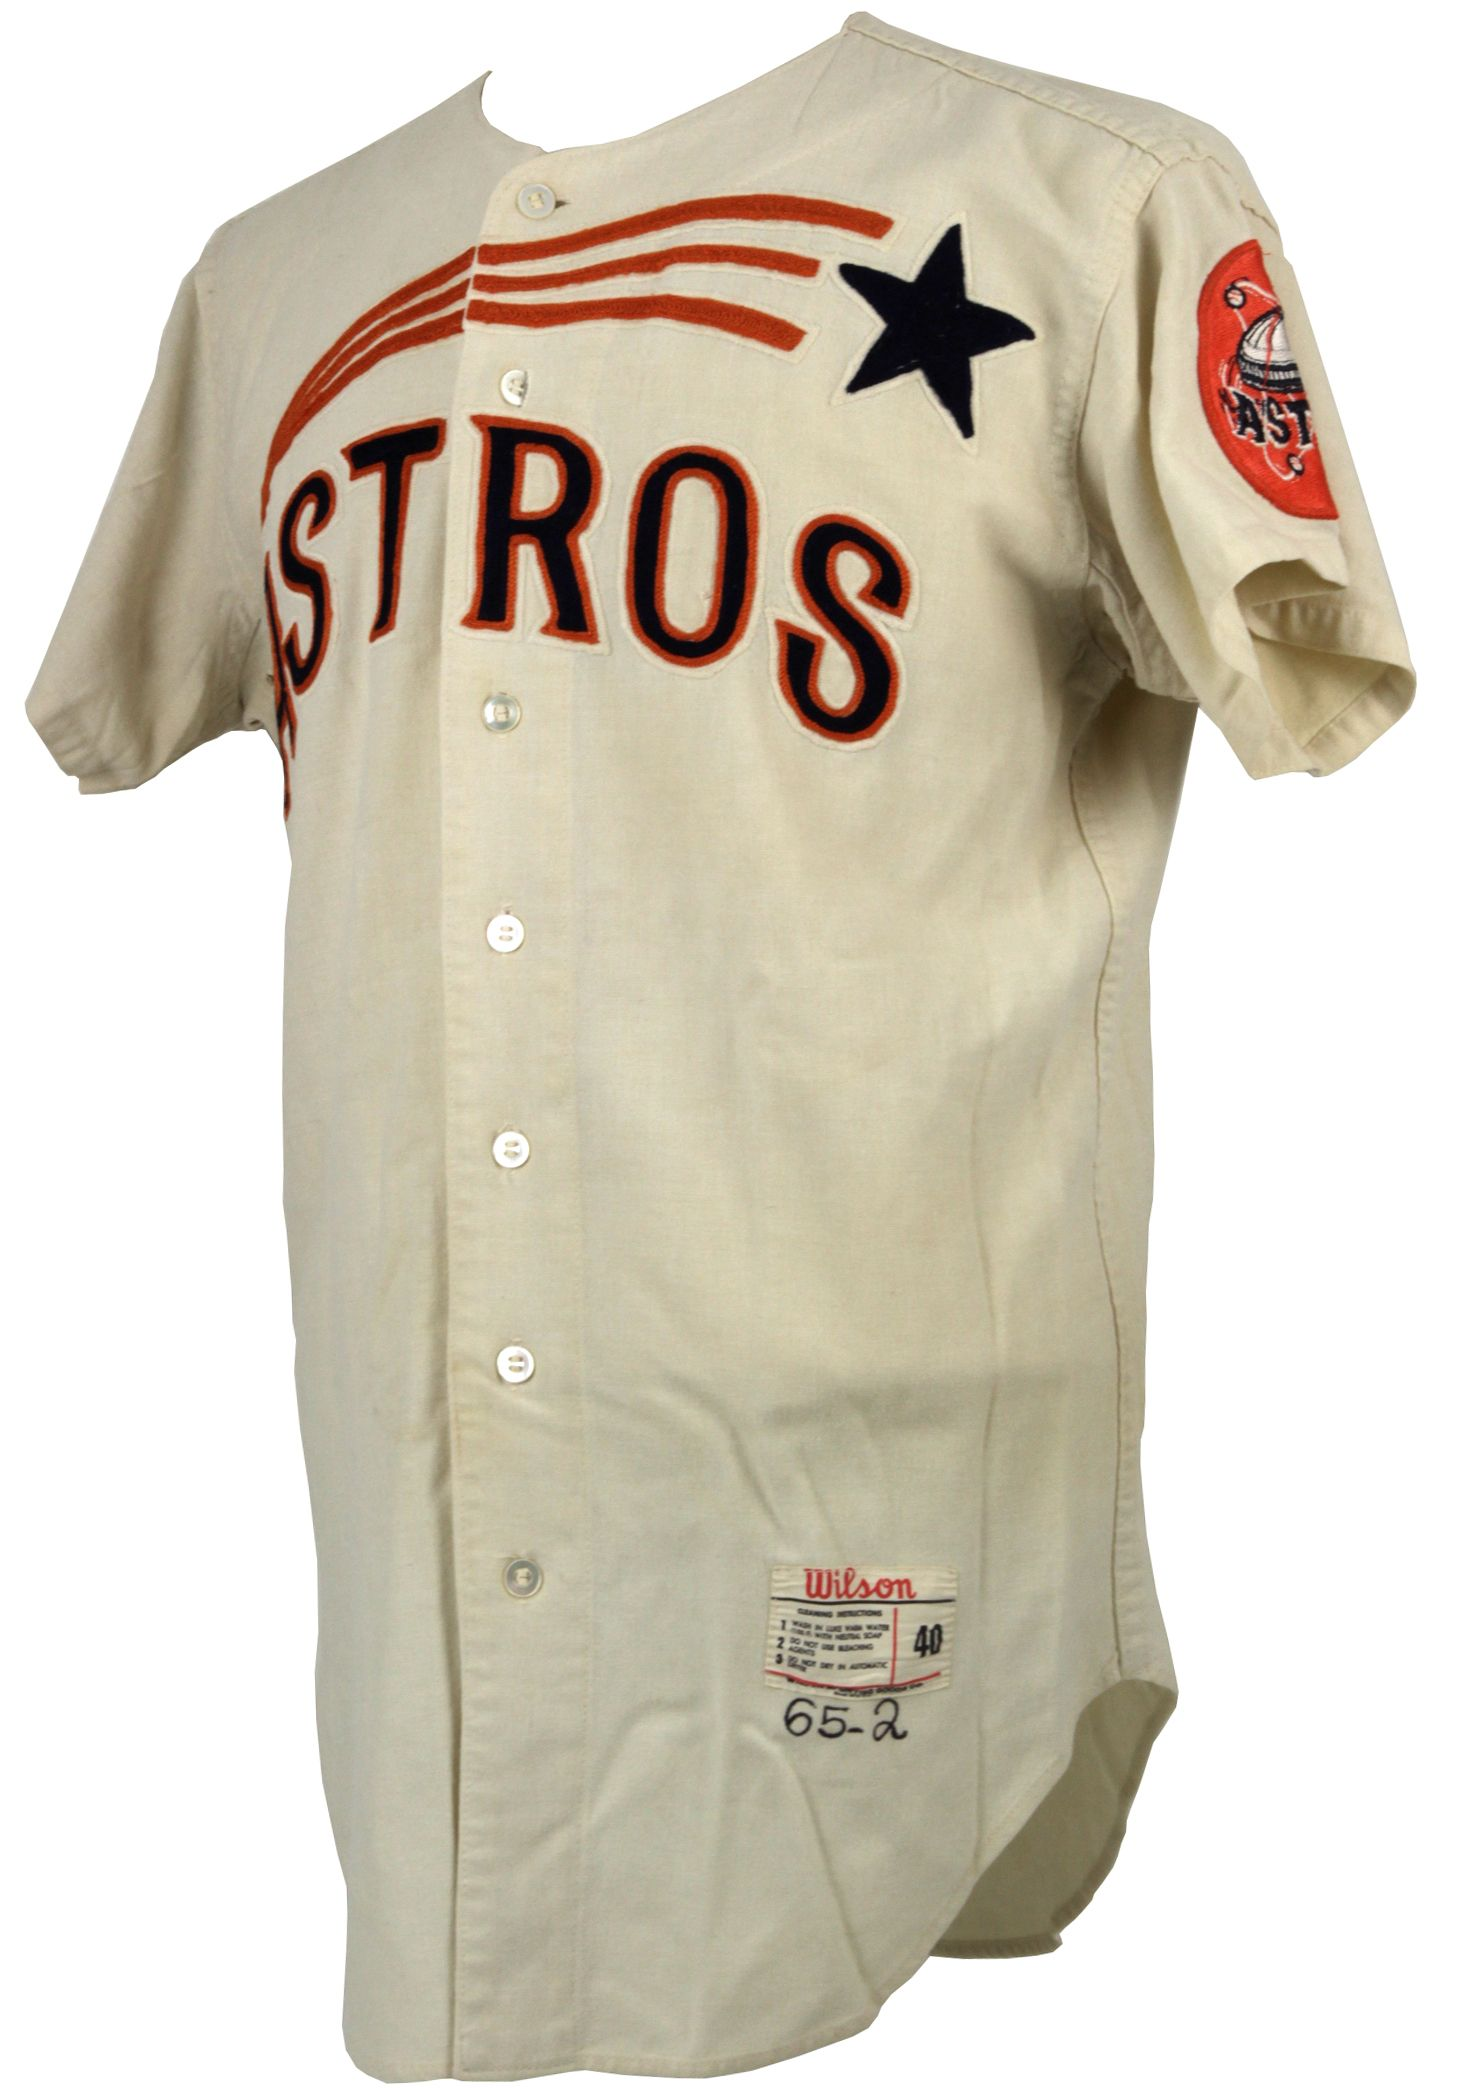 new styles f16d8 e725e 1965 Detail Houston - A5 Jersey Astros Game Worn mears Lot ...